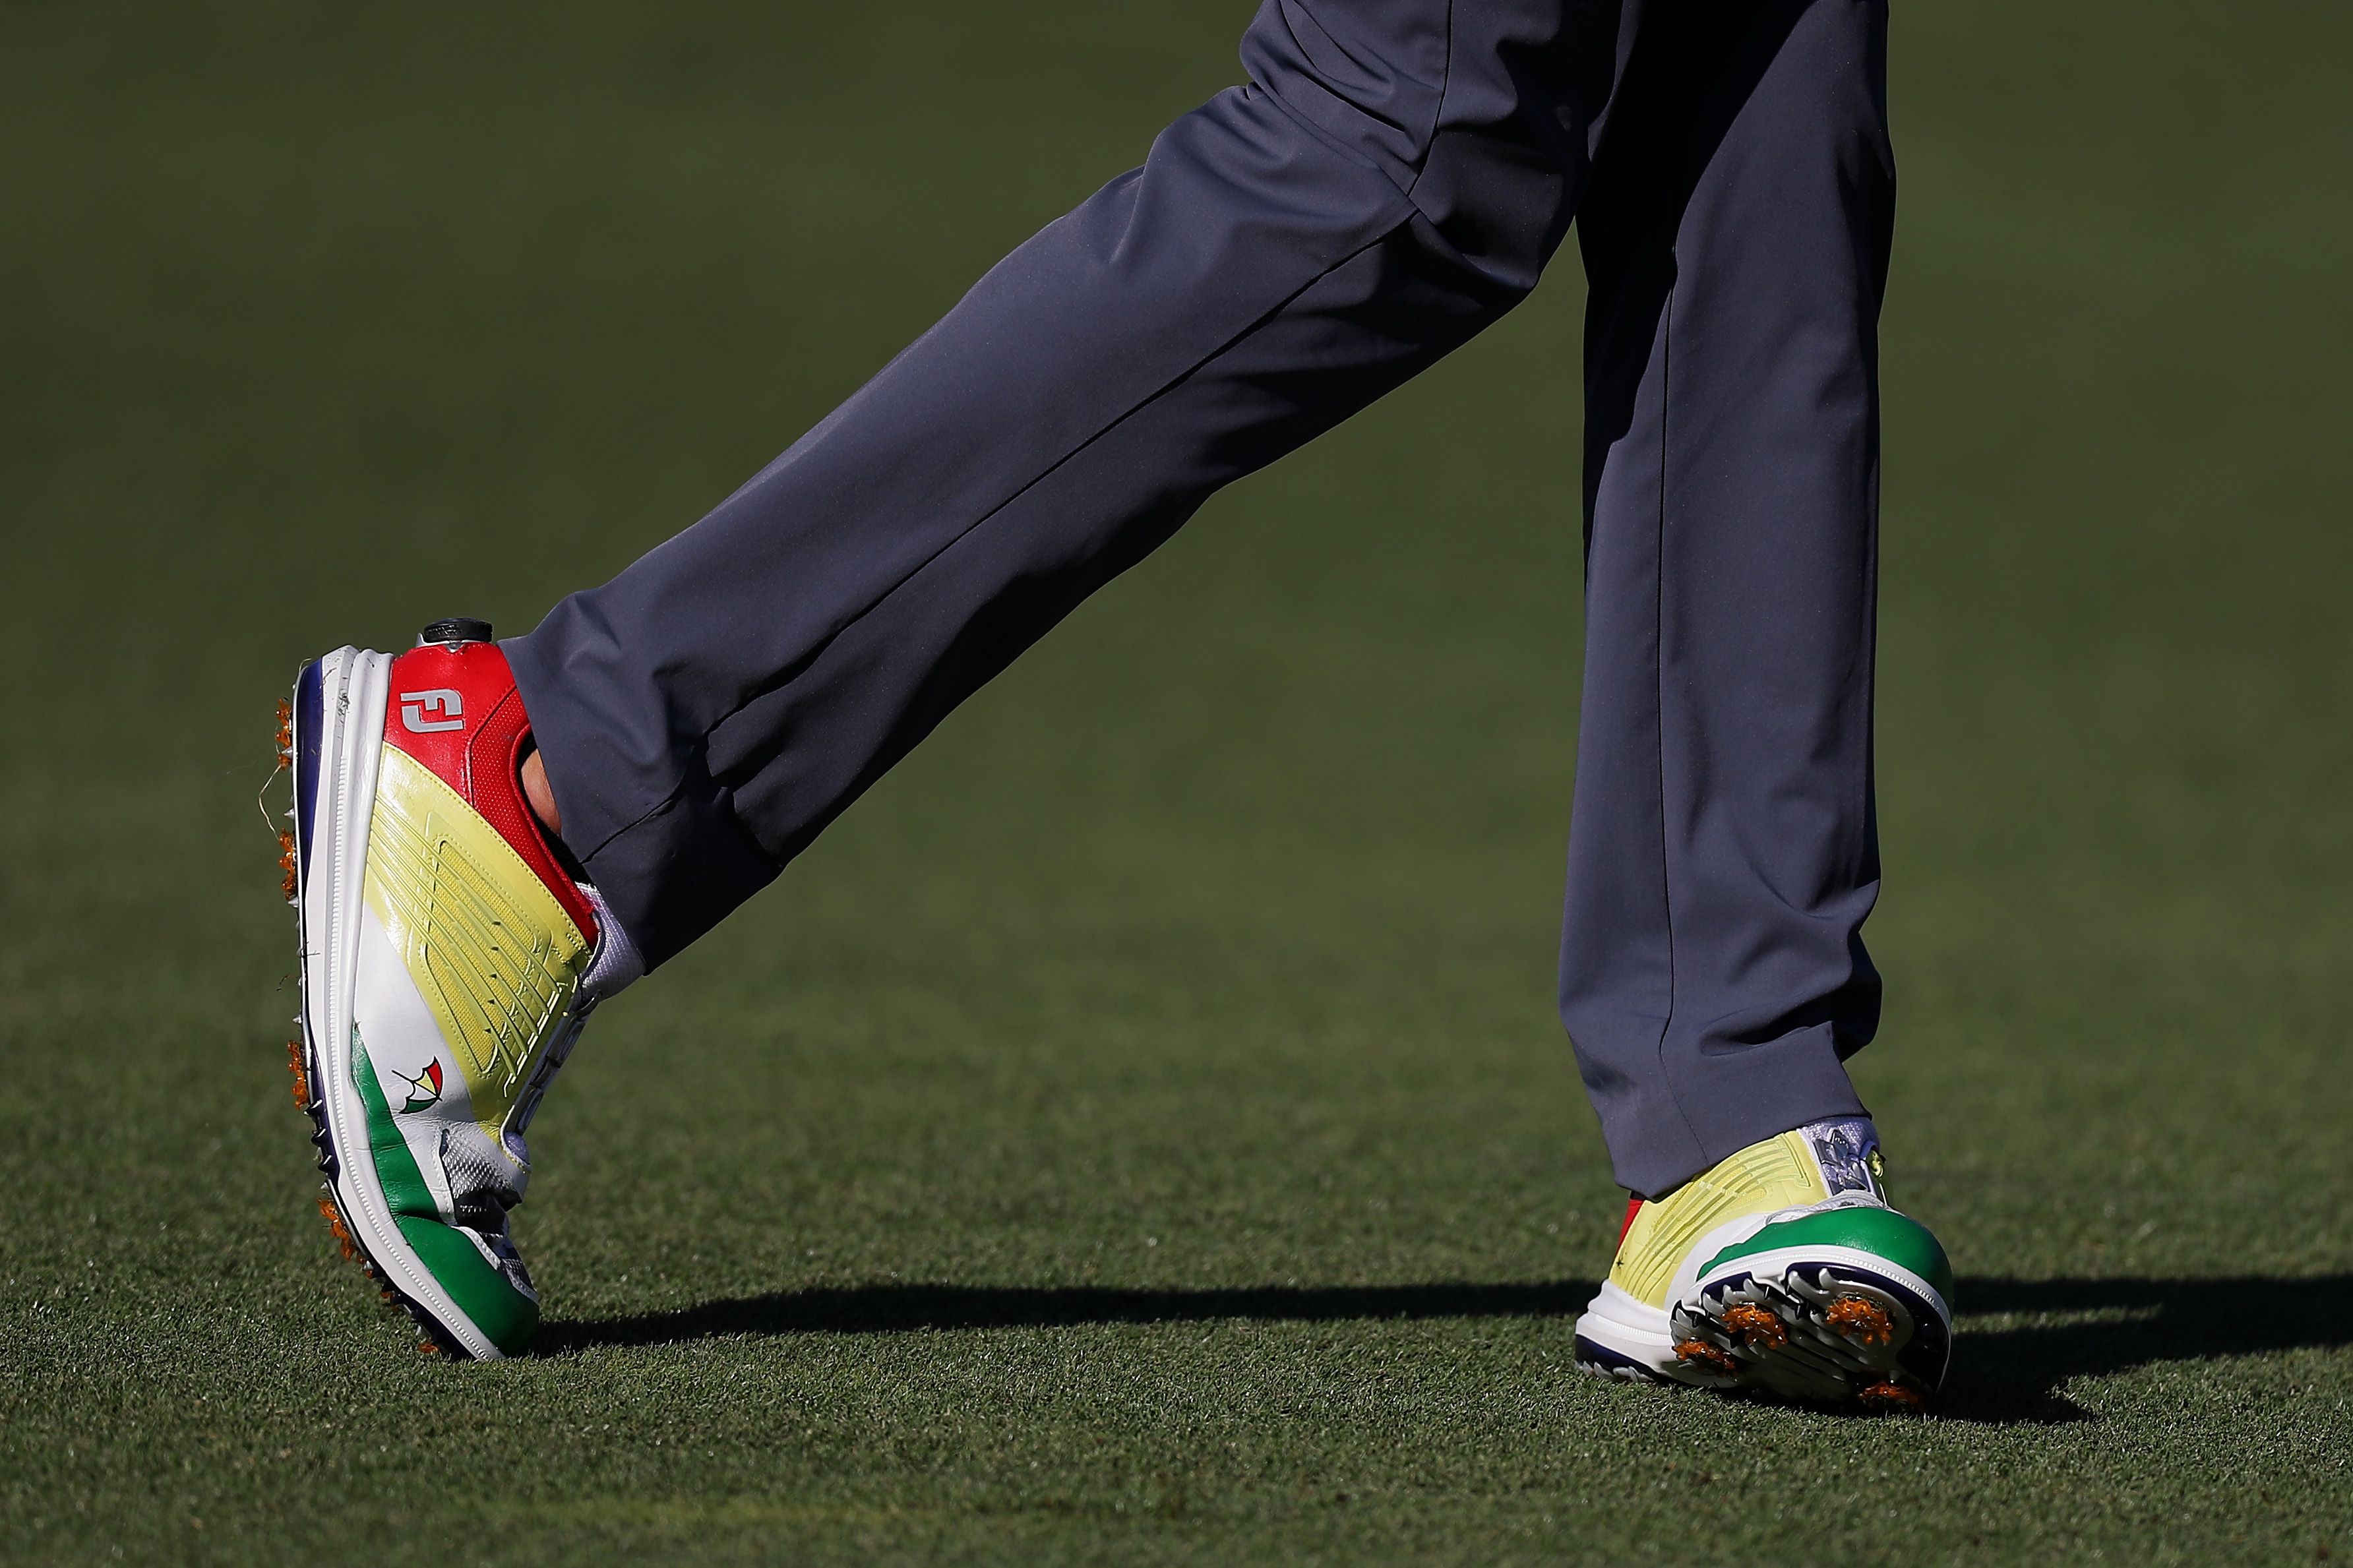 ORLANDO, FLORIDA - MARCH 07: A detailed view of shoes worn by Sam Saunders of the United States are seen as he walks the 11th hole during the first round of the Arnold Palmer Invitational Presented by Mastercard at the Bay Hill Club on March 07, 2019 in Orlando, Florida. (Photo by Richard Heathcote/Getty Images)